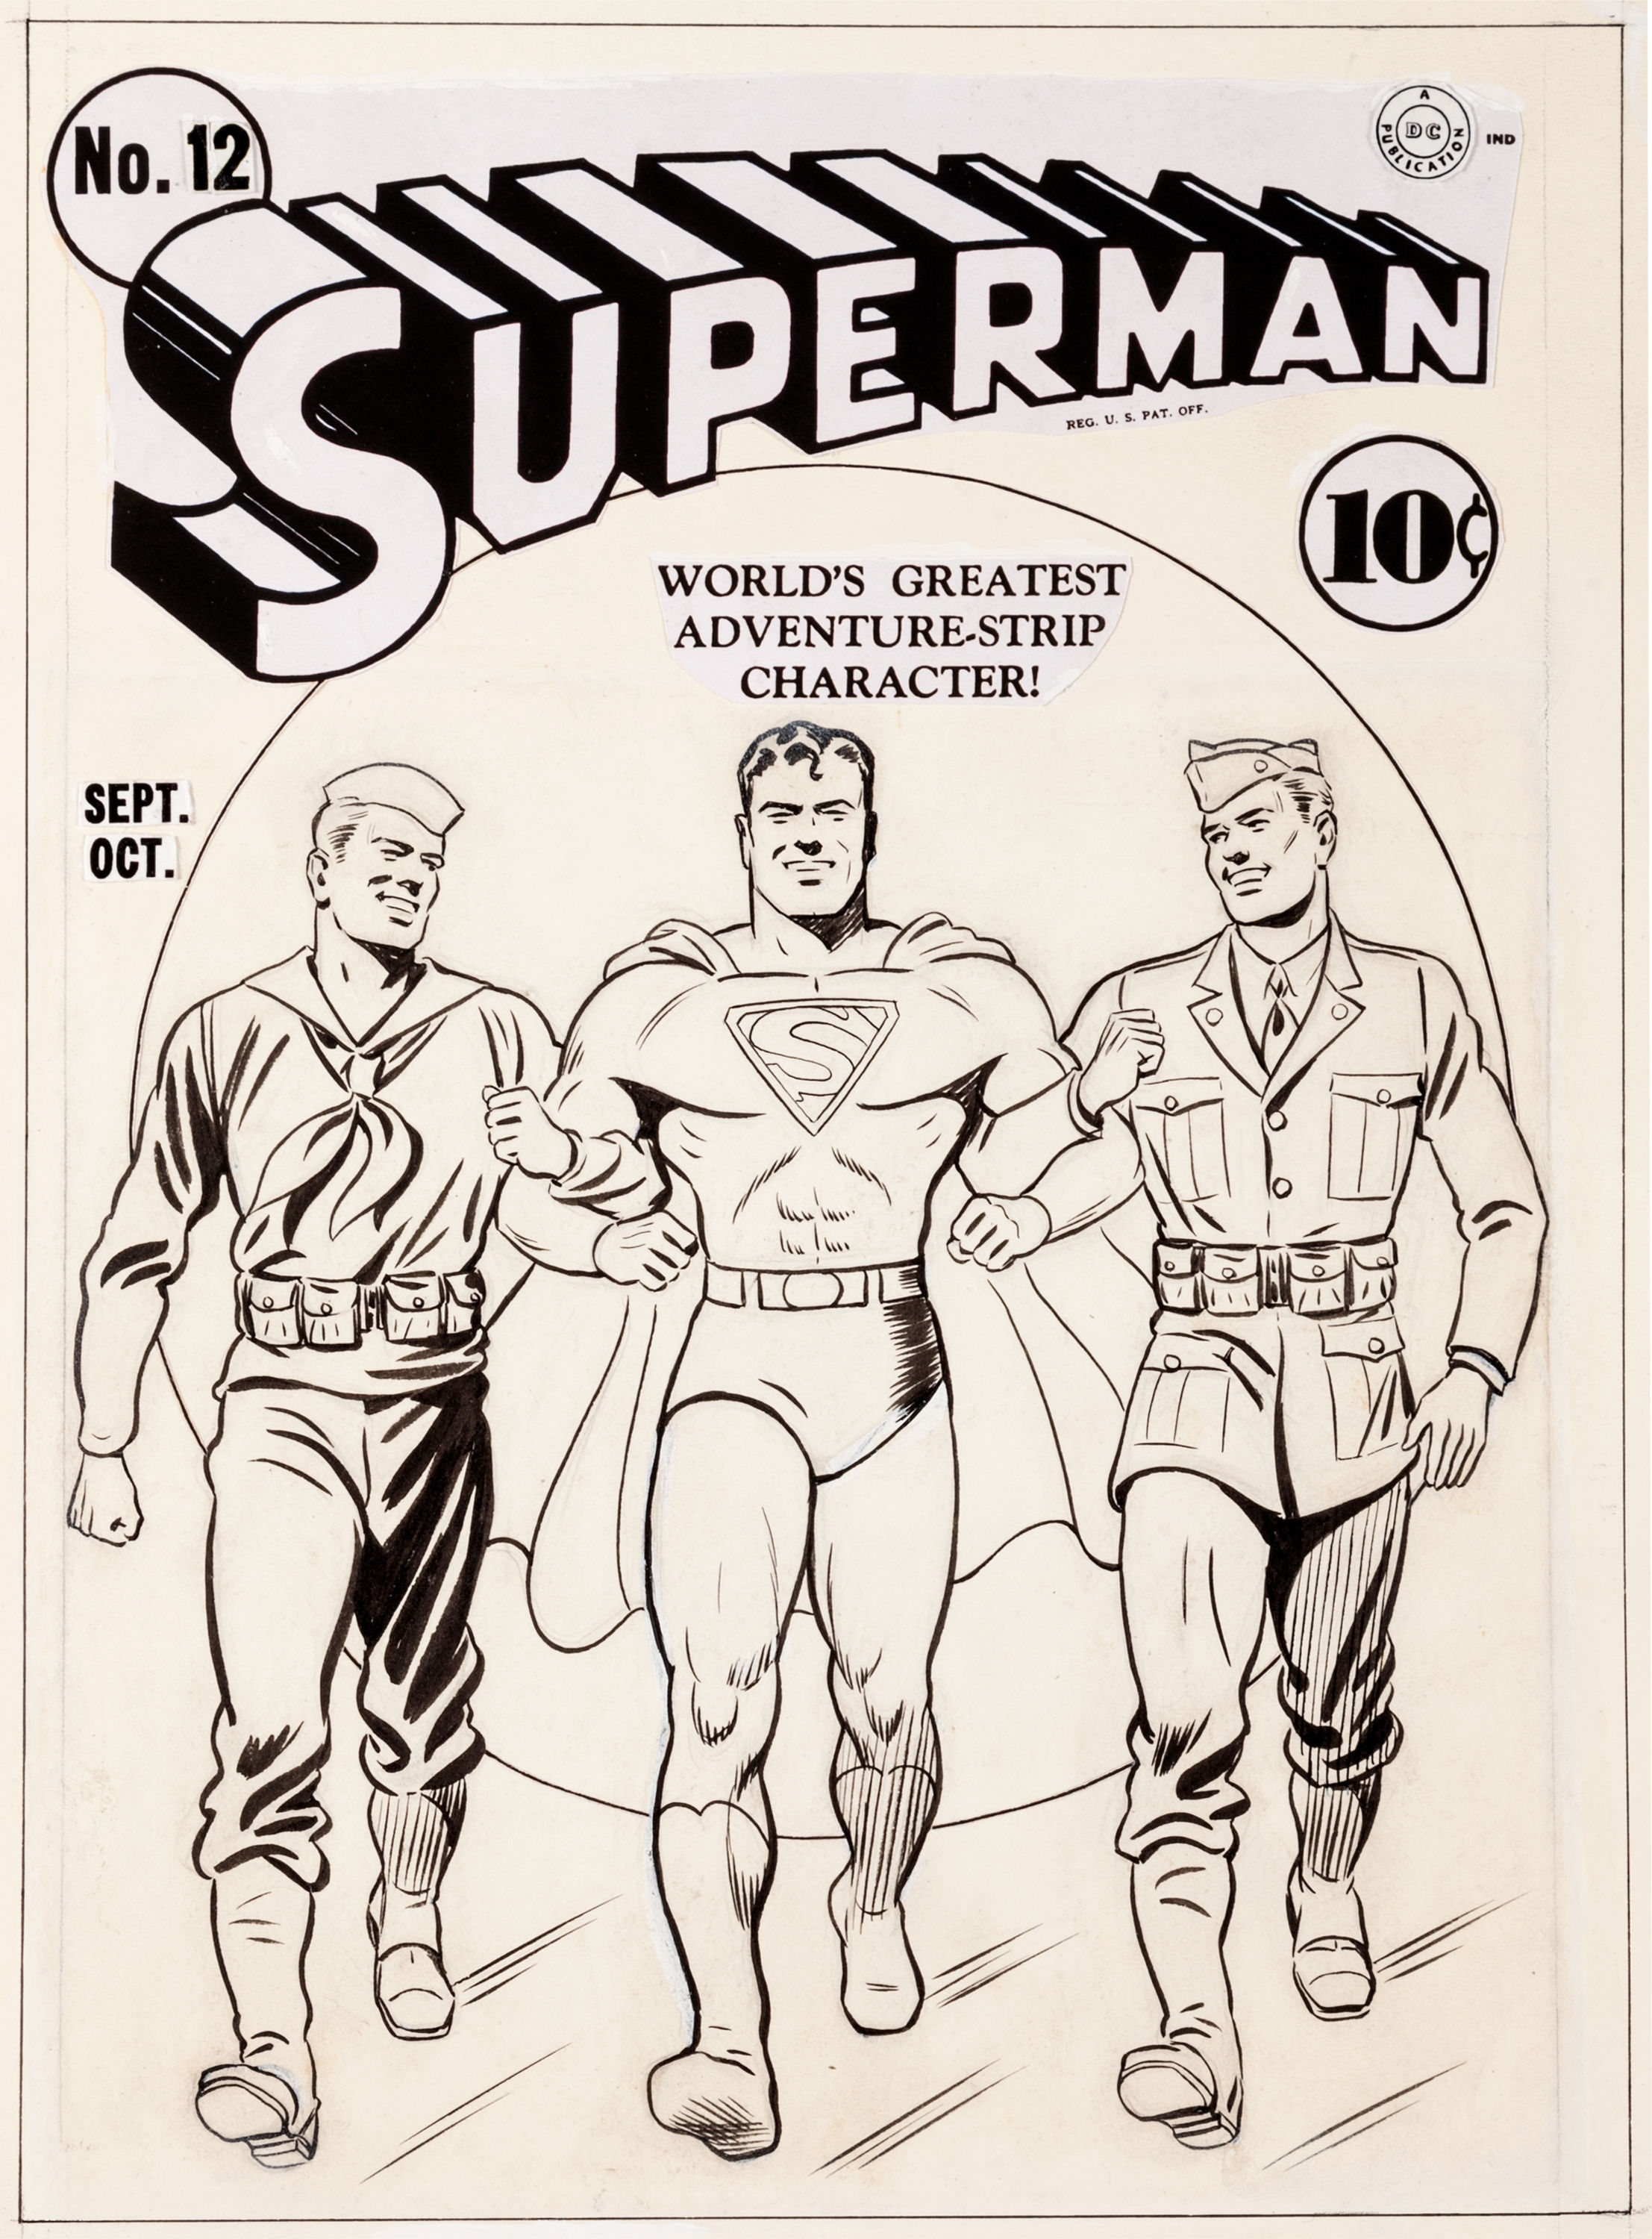 Jerry Robinson, an artist at DC Comics, had the foresight to save the original cover art from Superman No. 12 (Sept./Oct. 1941). Estimate: $125,000. Heritage Auctions images